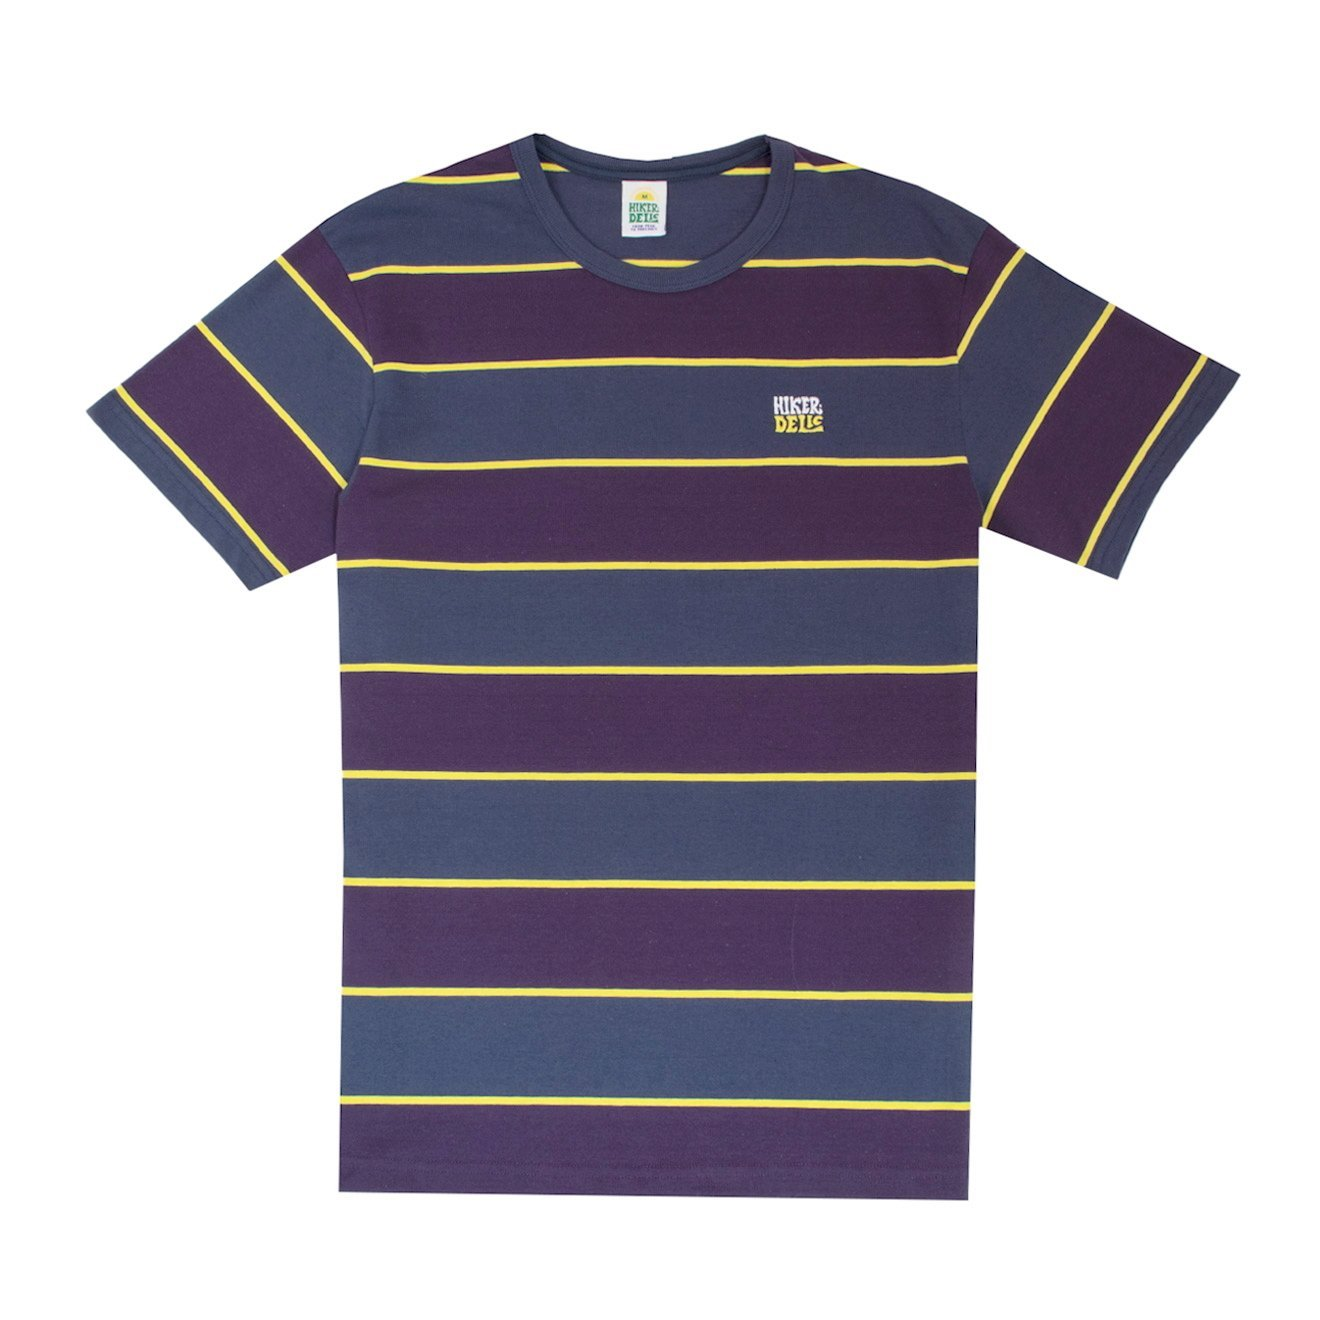 Hikerdelic-Wide-Stripe-Short-Sleeve-T-Shirt—Navy-Purple—001_1320x